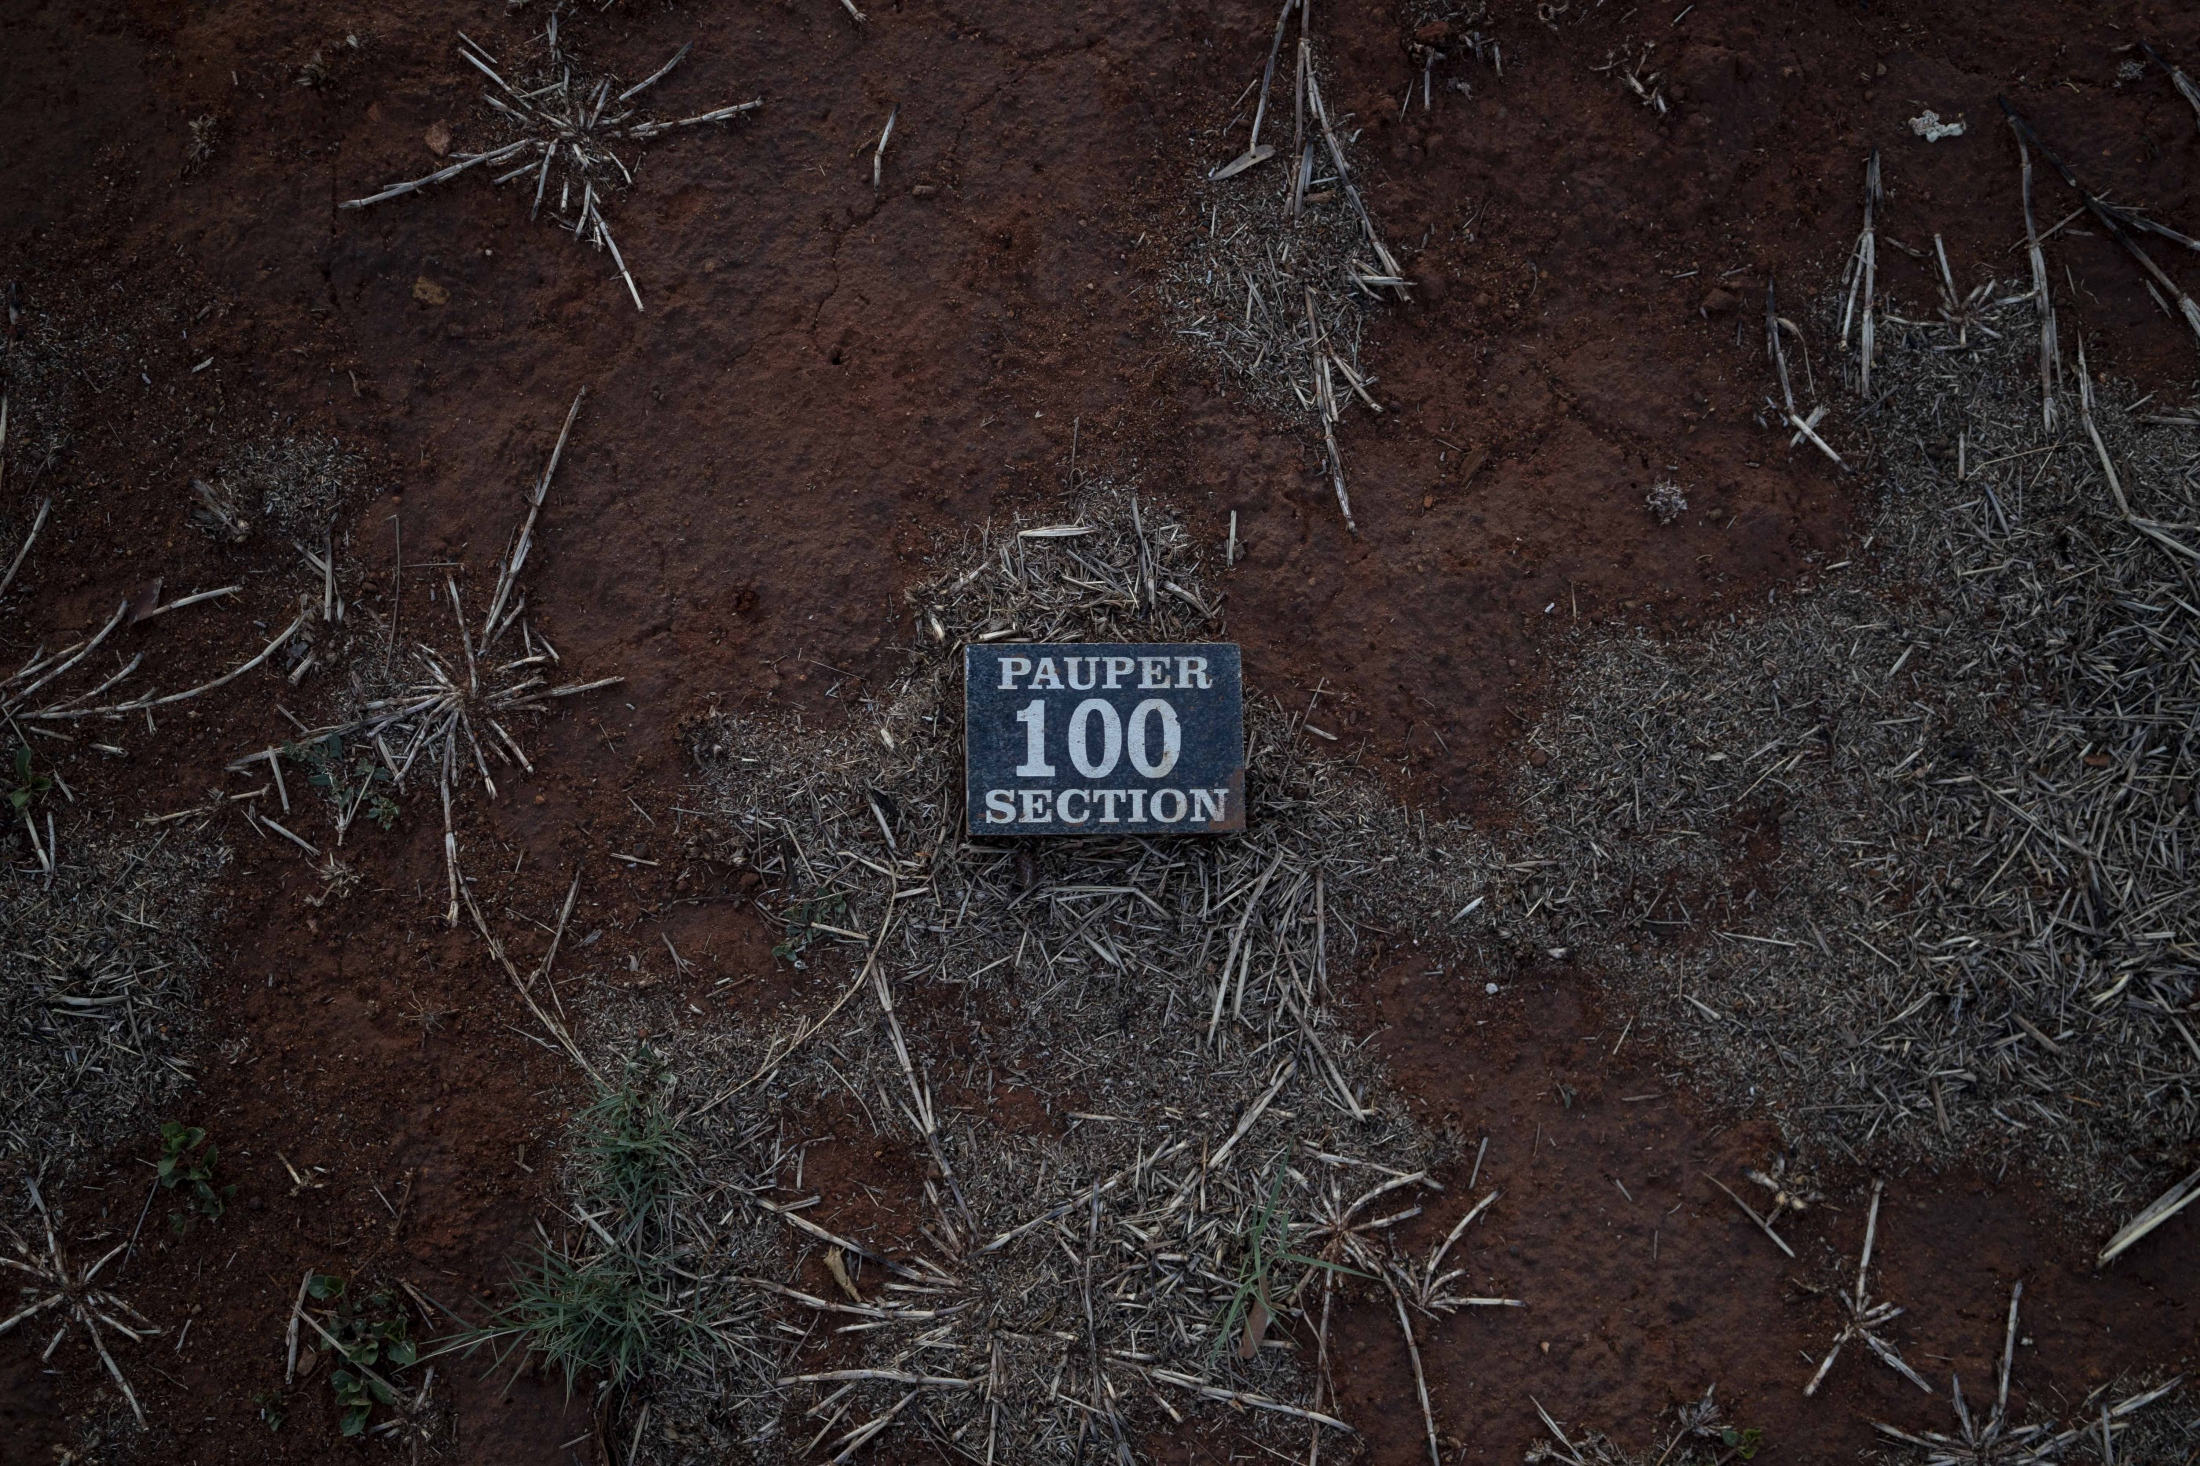 """In this Wednesday, Oct. 3, 2018 photo, a so called """"pauper grave"""" is seen at the Olifantsvlei cemetery outside Johannesburg. At least five bodies of unidentified people are buried in each grave."""